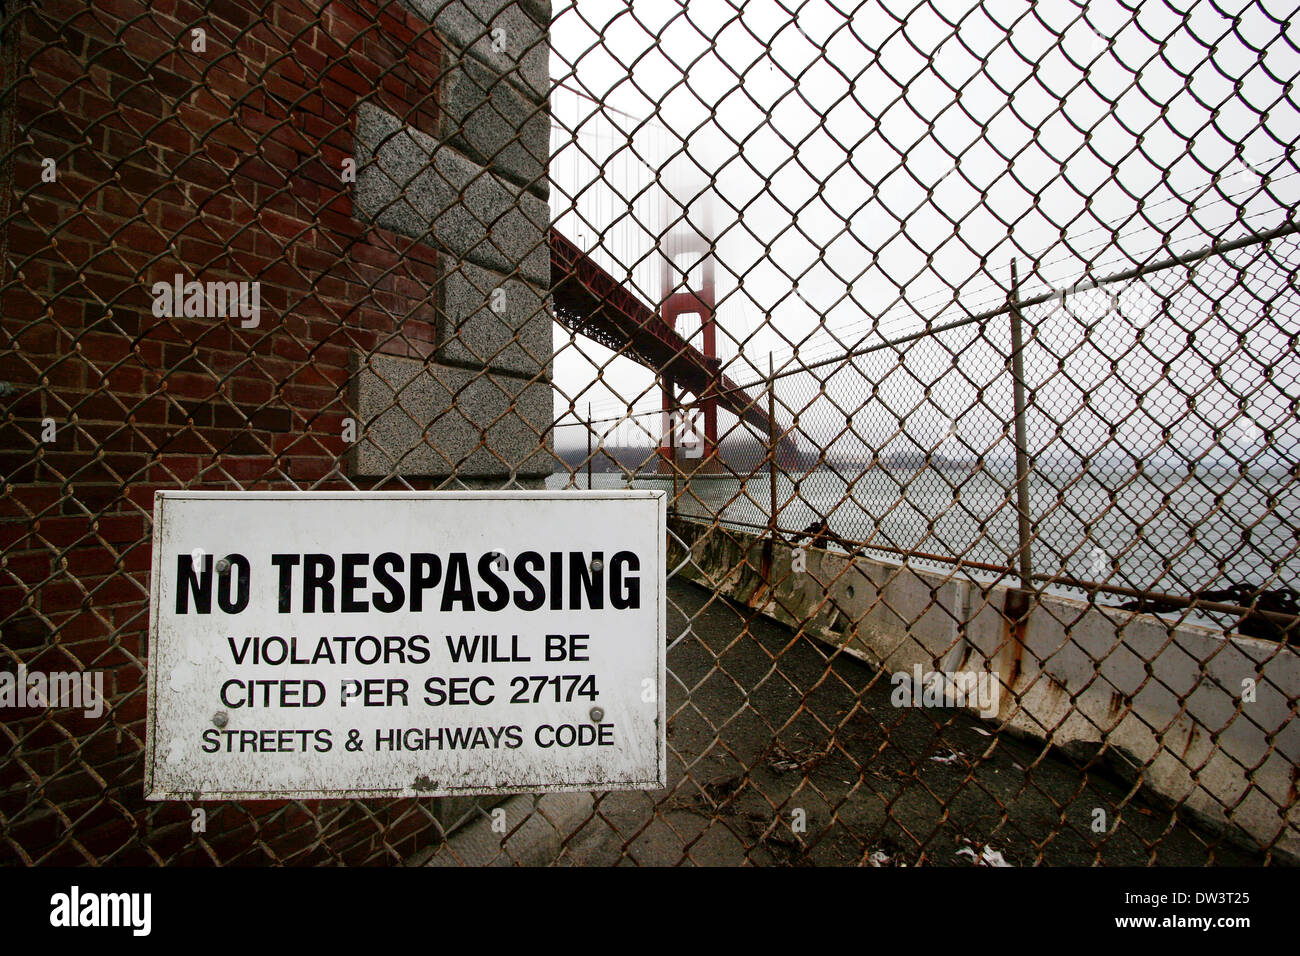 Wire netting with no trespassing signal with the Golden Gate Bridge on the background - Stock Image